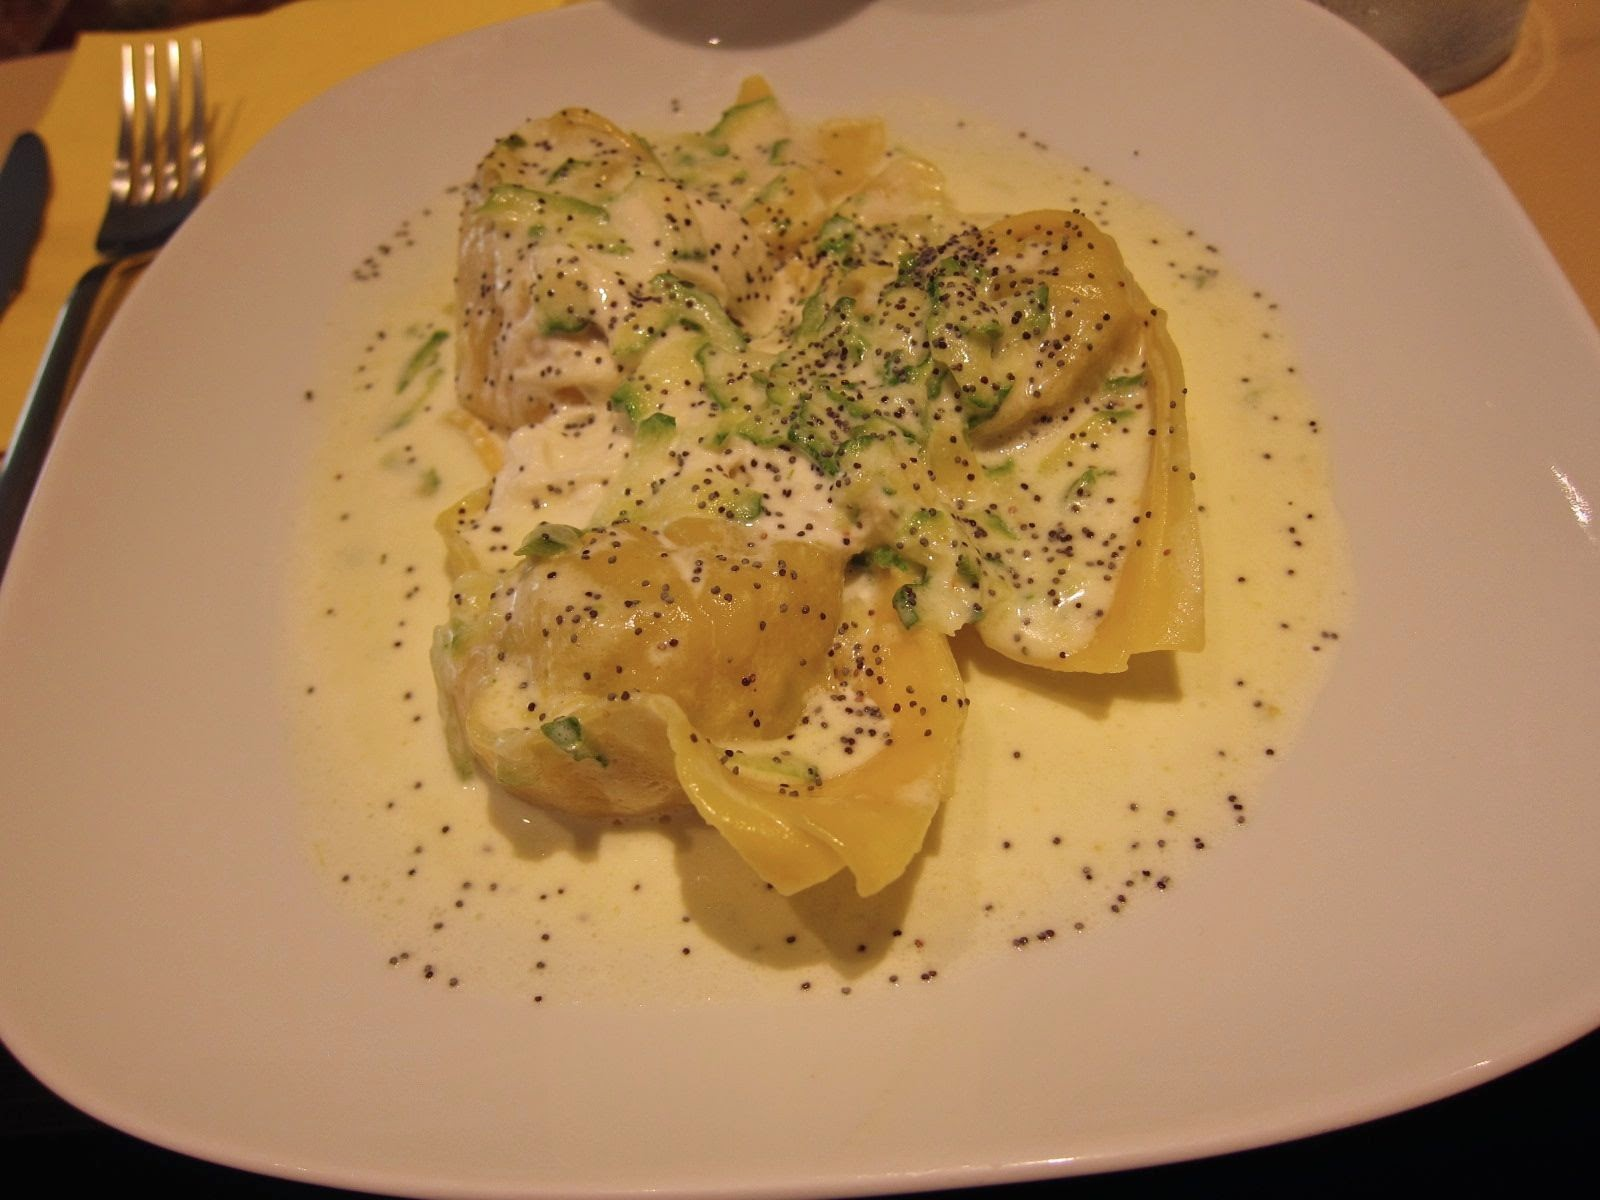 Ravioli stuffed with zucchini and ricotta at Zeb